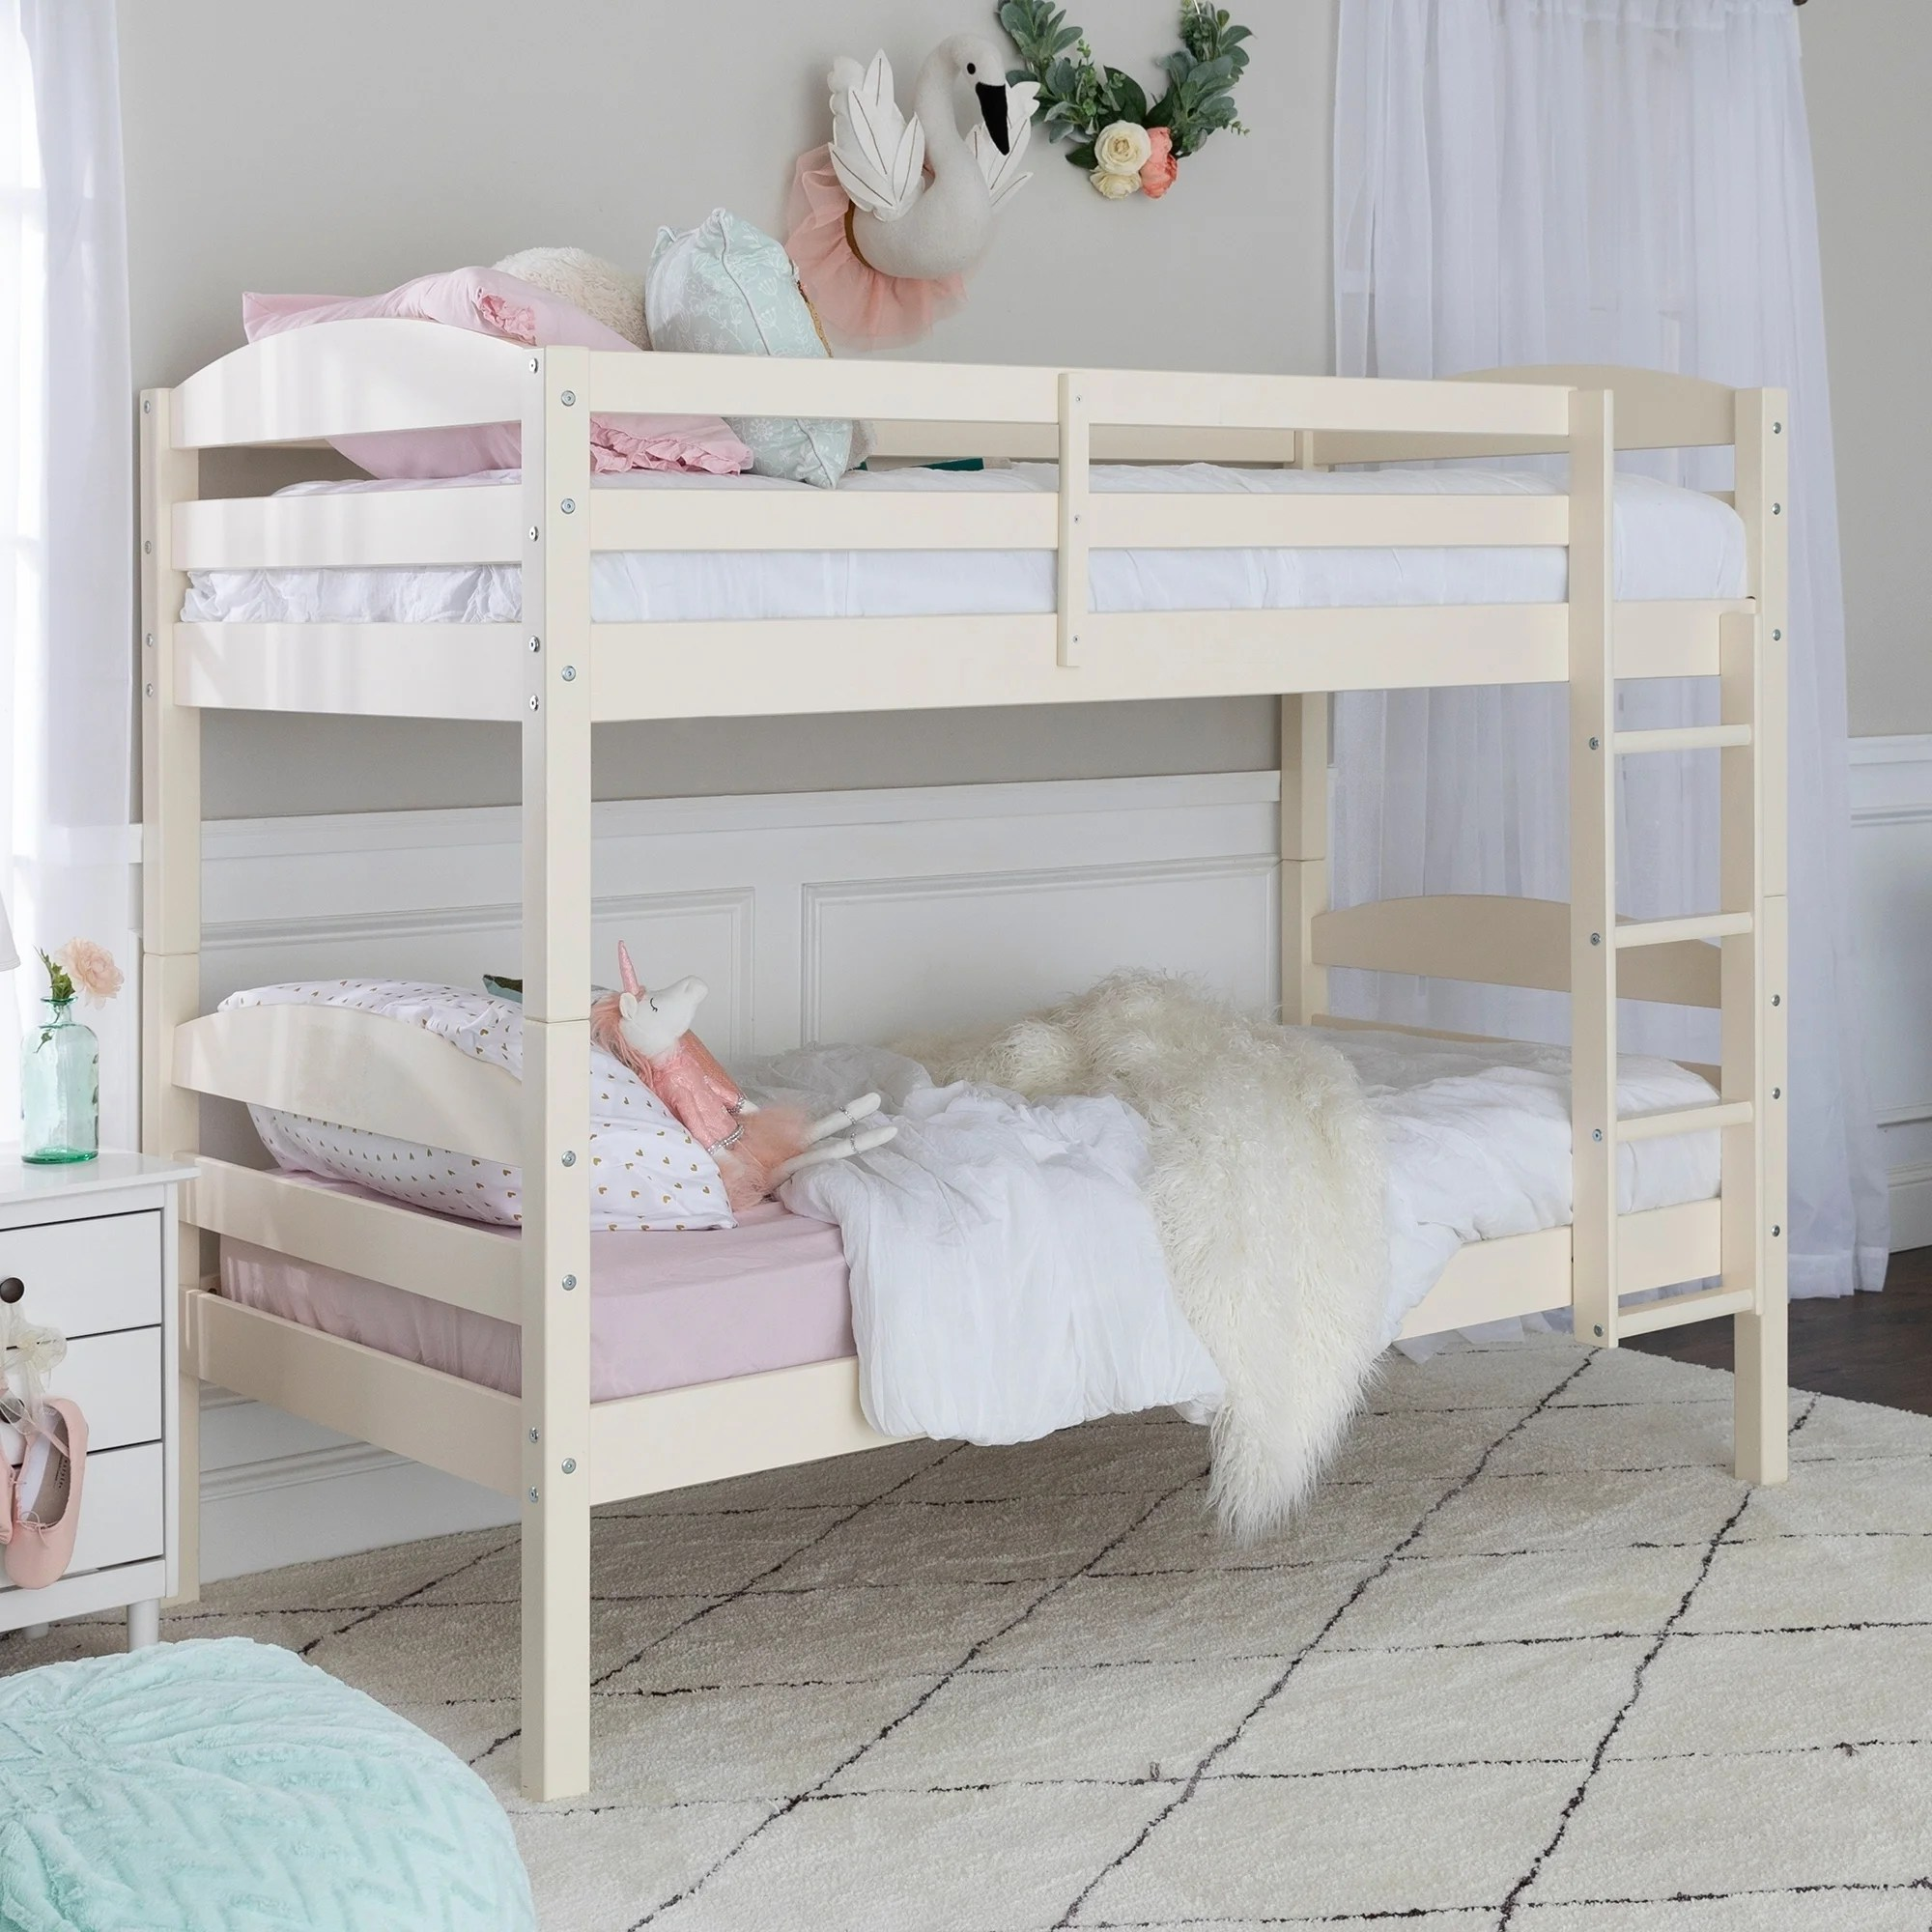 Best Boys Beds Buy Bunk Bed Kids Toddler Beds Online At Overstock Our Best